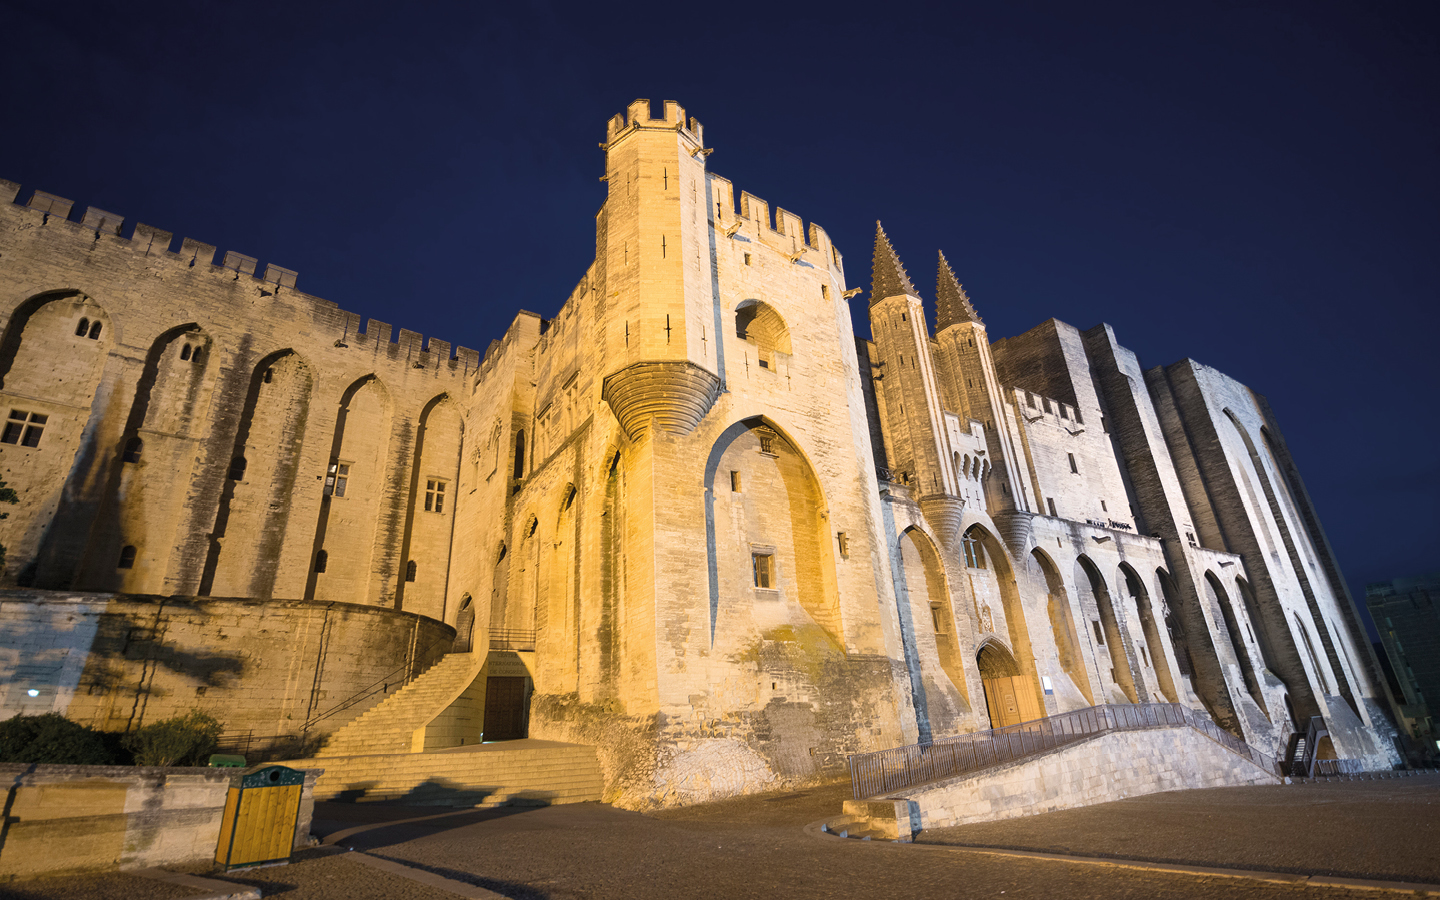 The Palais des Papes in Avignon at night